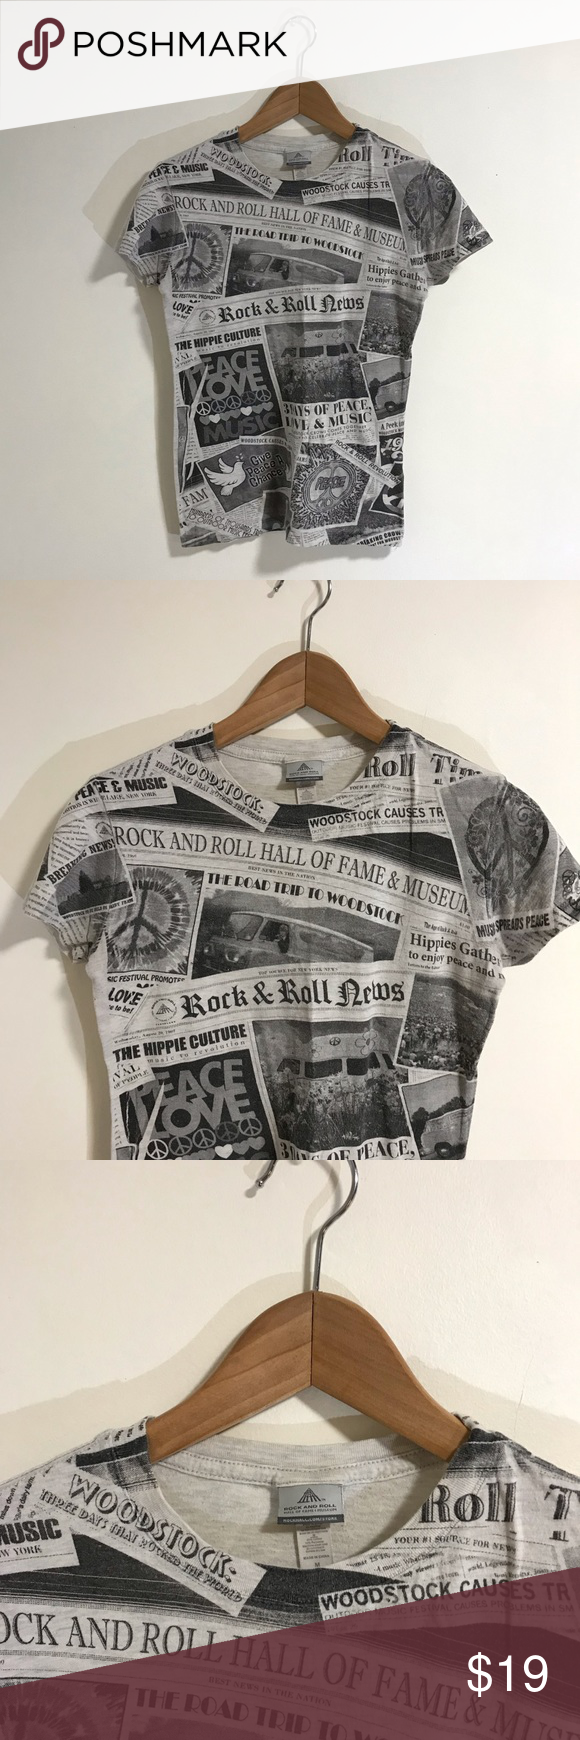 "Rock And Roll Hall Of Fame Newspaper T-Shirt Rock And Roll Hall Of Fame Newspaper T-Shirt Size Medium Great used condition 90% cotton 10% polyester All offers considered   Approximate measurements  Shoulder to shoulder: 14.5"" Pit to pit: 16"" Shoulder to hem: 23"" Tops Tees - Short Sleeve #rockandrolloutfits"